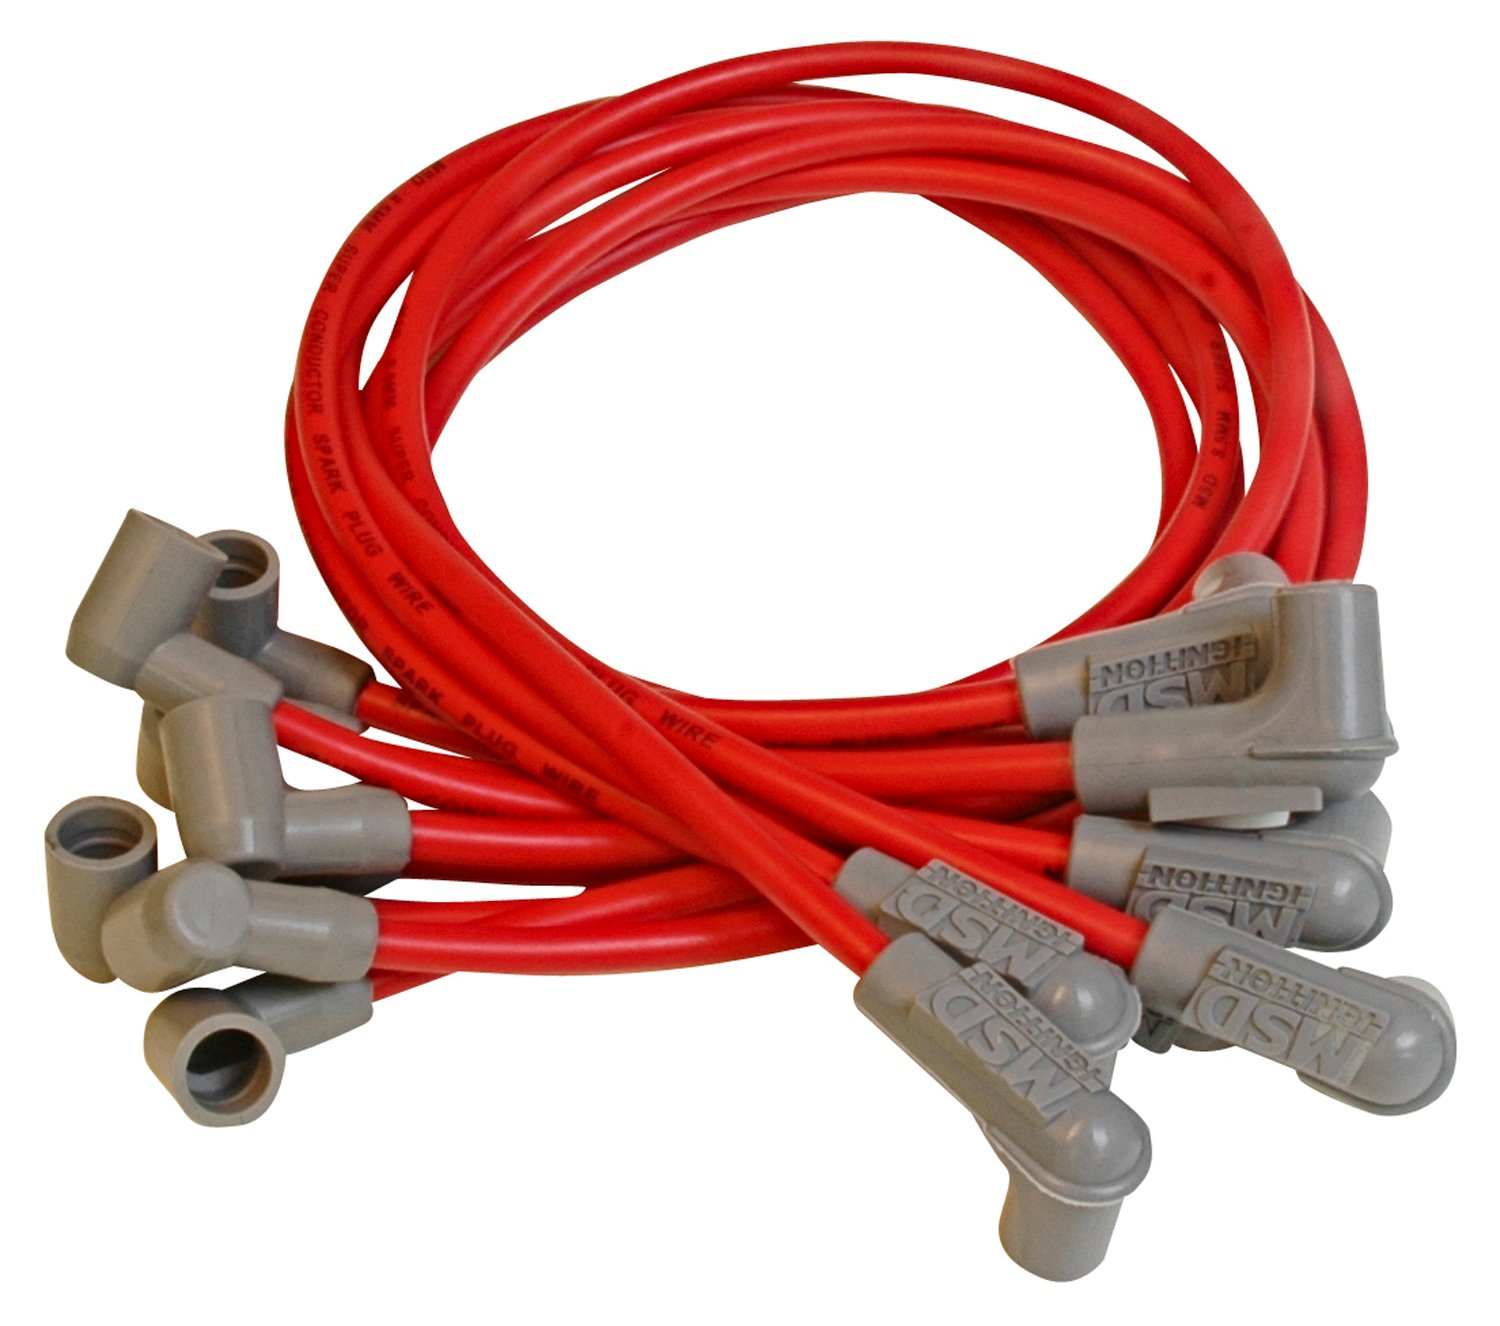 31599 - Super Conductor Spark Plug Wire Set, Small Block Chevy, Socket Dist. Cap Image